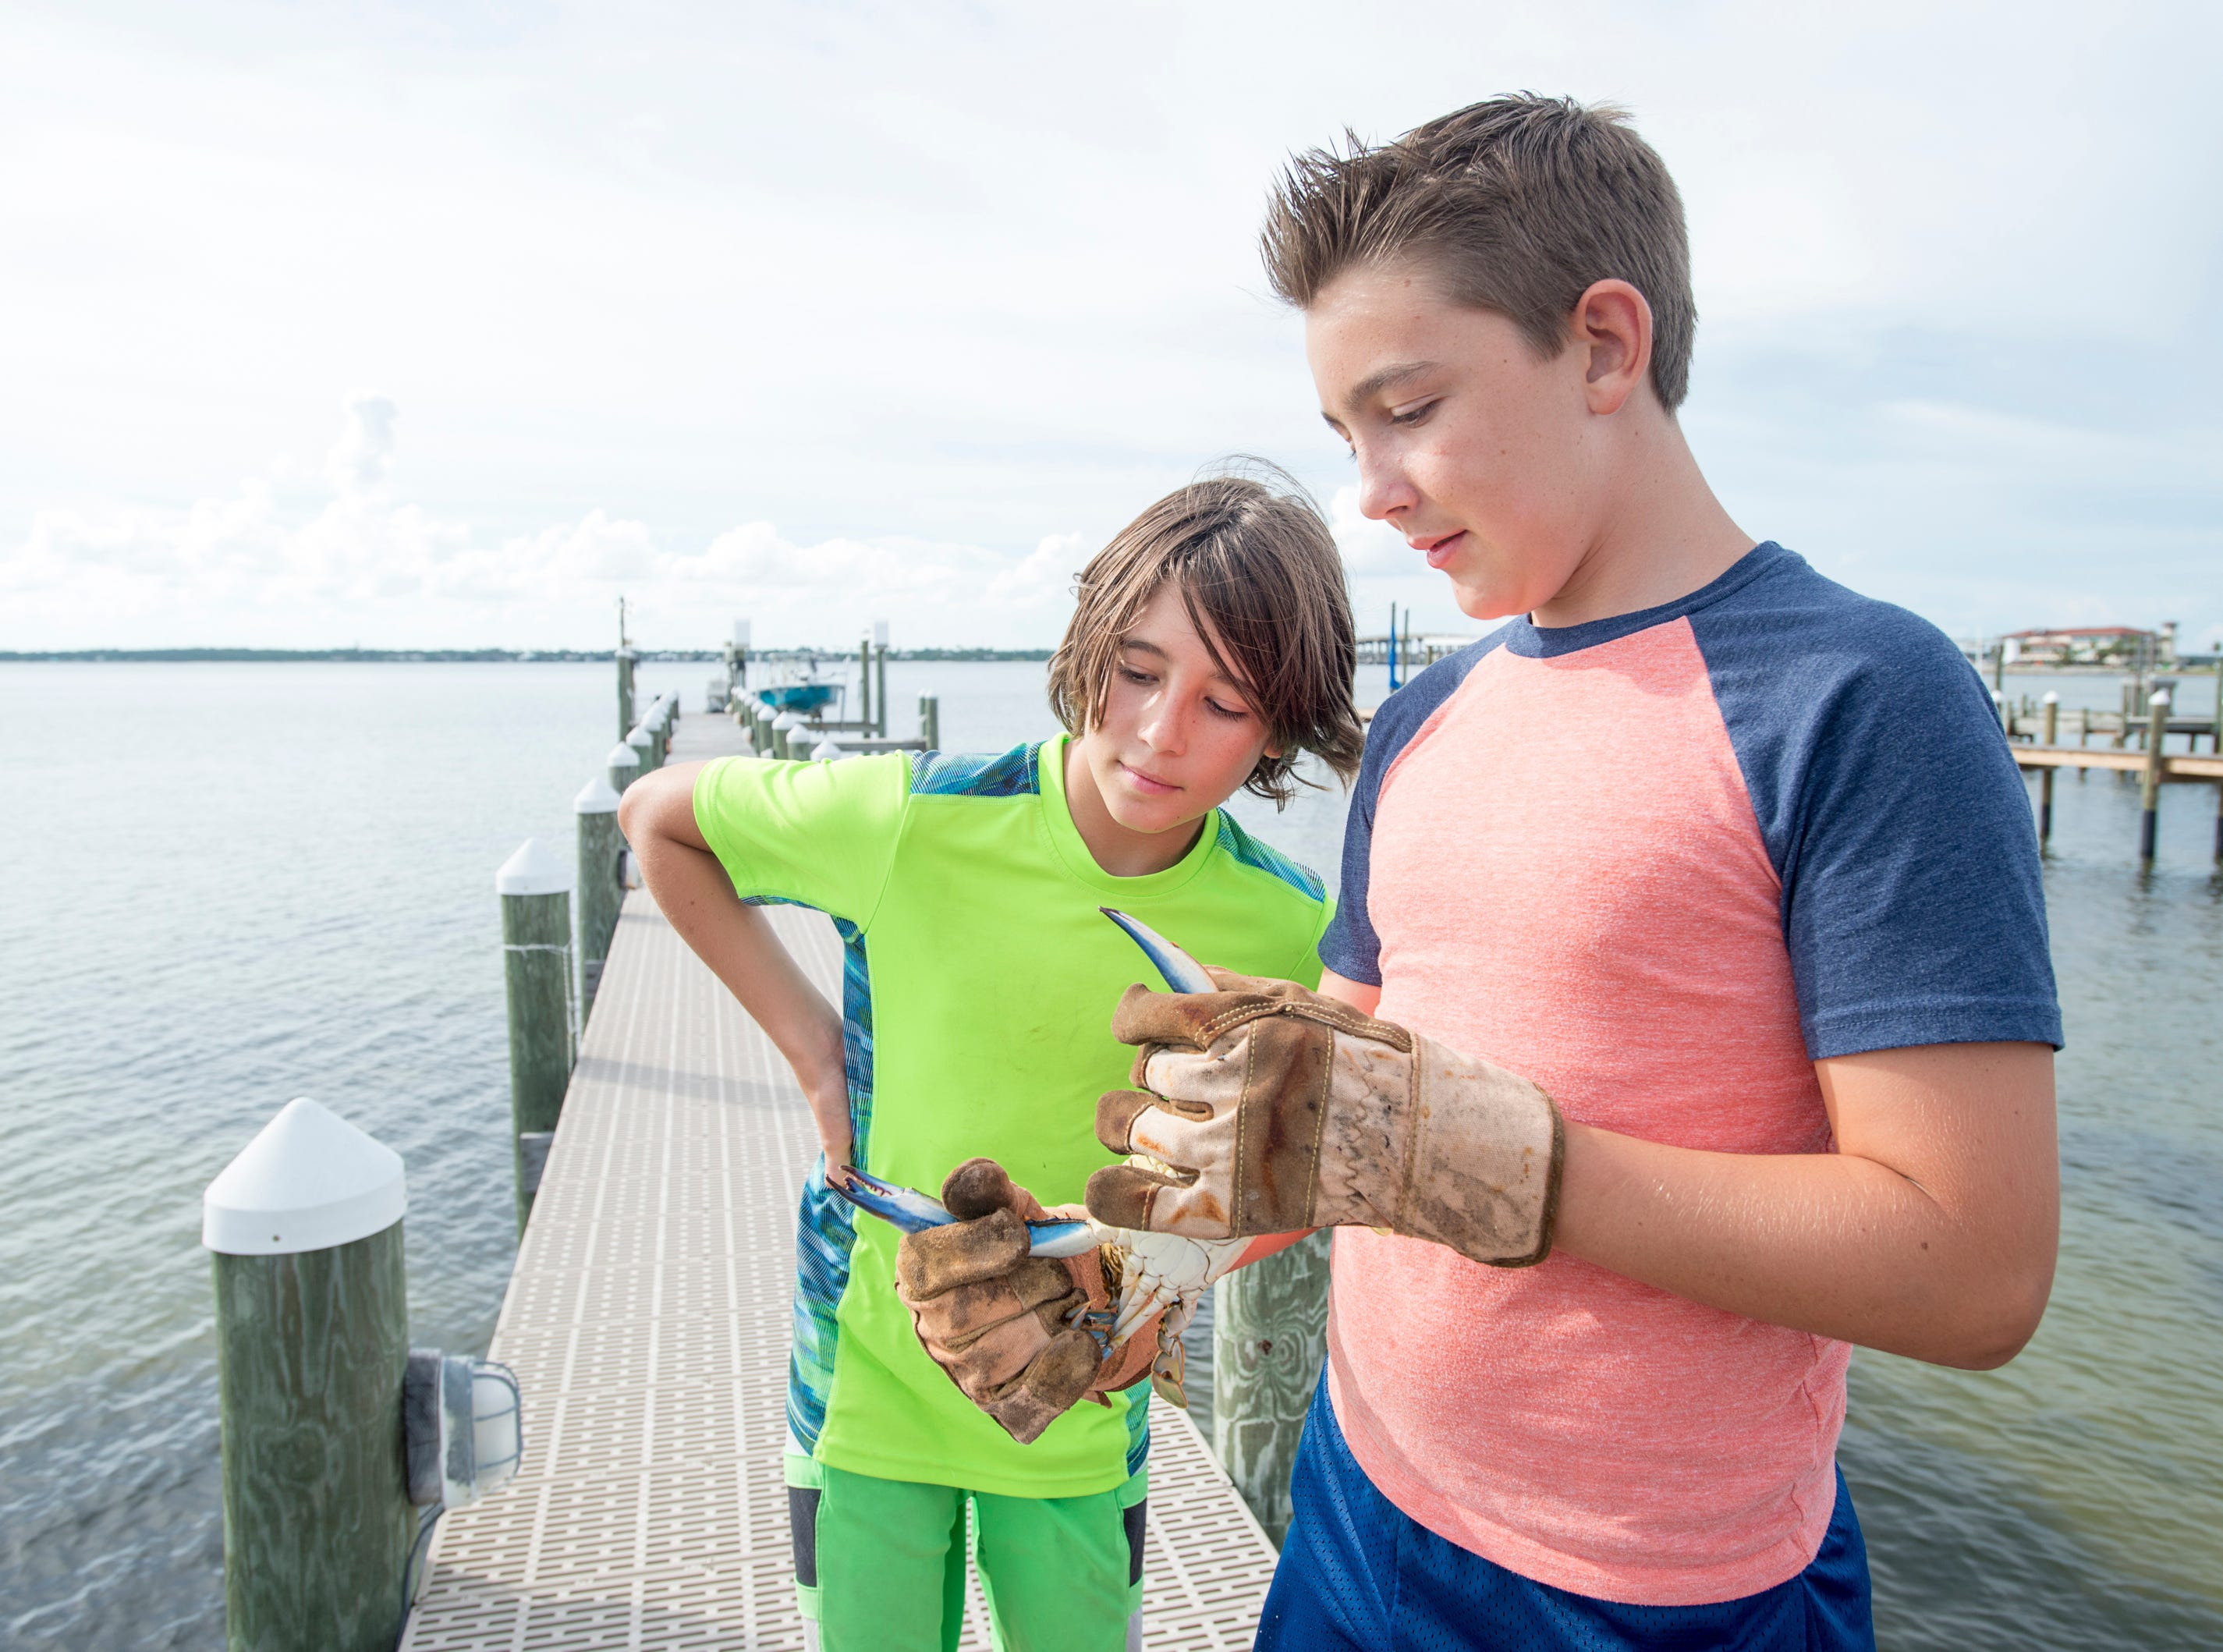 Ryan Kalb, 10, left, gets a closer look at the three-clawed blue crab that his brother Ben Kalb, 12, recently caught behind their home on Little Sabine Bay in Pensacola.   Thursday, August 9, 2018.